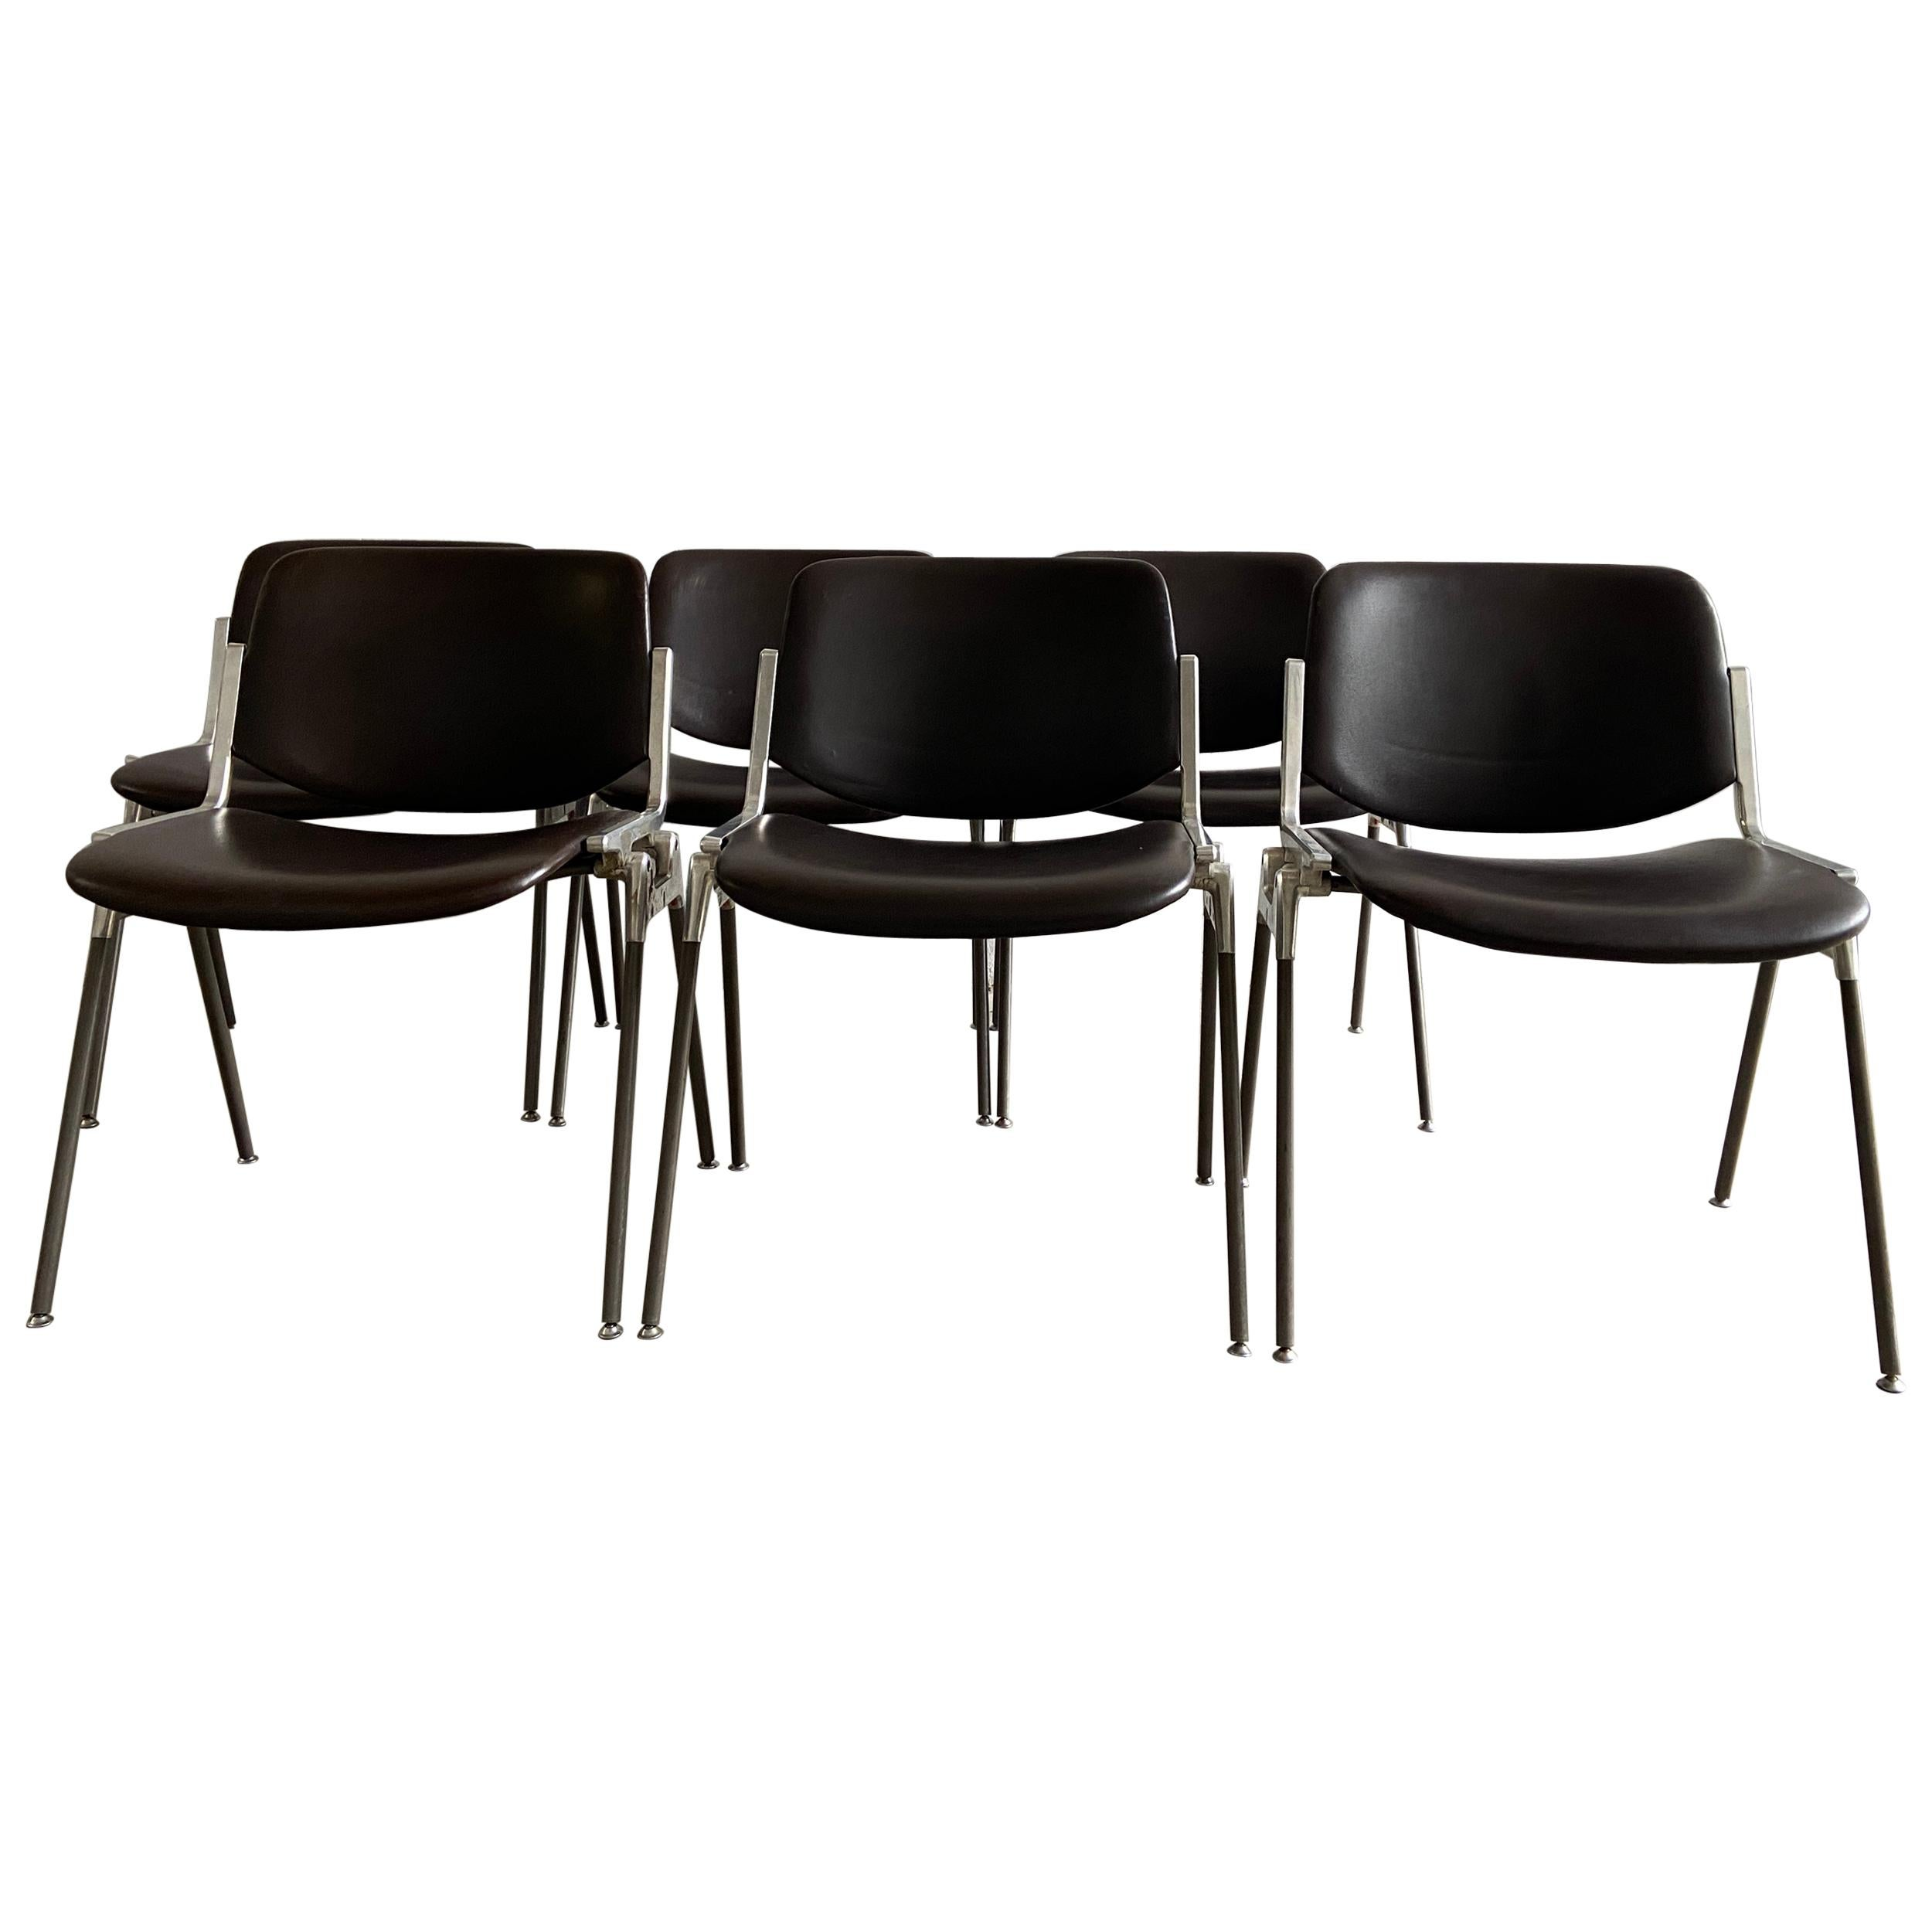 Mid-Century Modern Italian Set of 6 Stackable Chairs by G. Piretti for Castelli